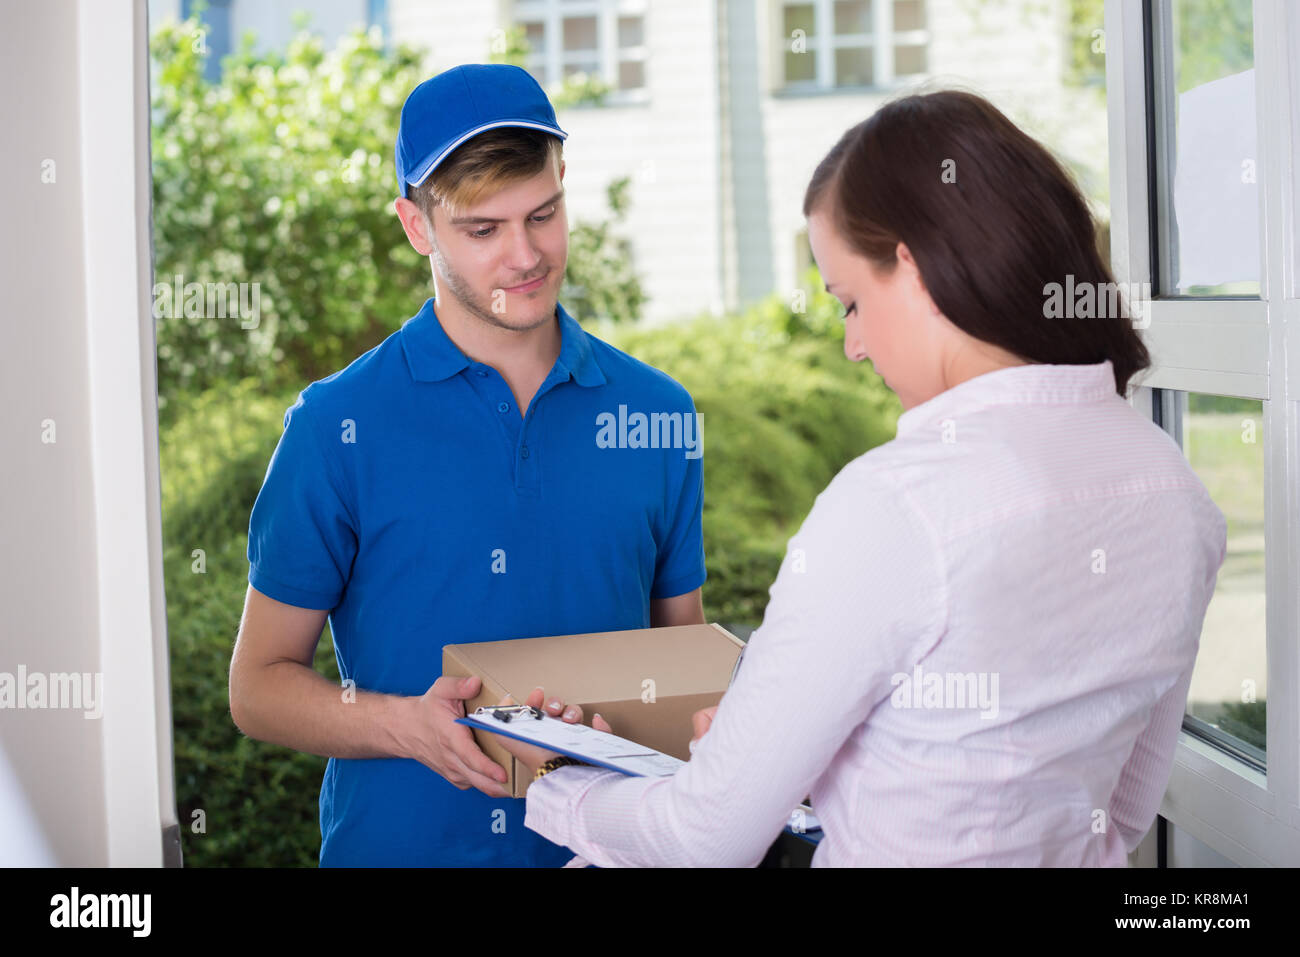 Woman Signing Receipt Of Delivery Package - Stock Image